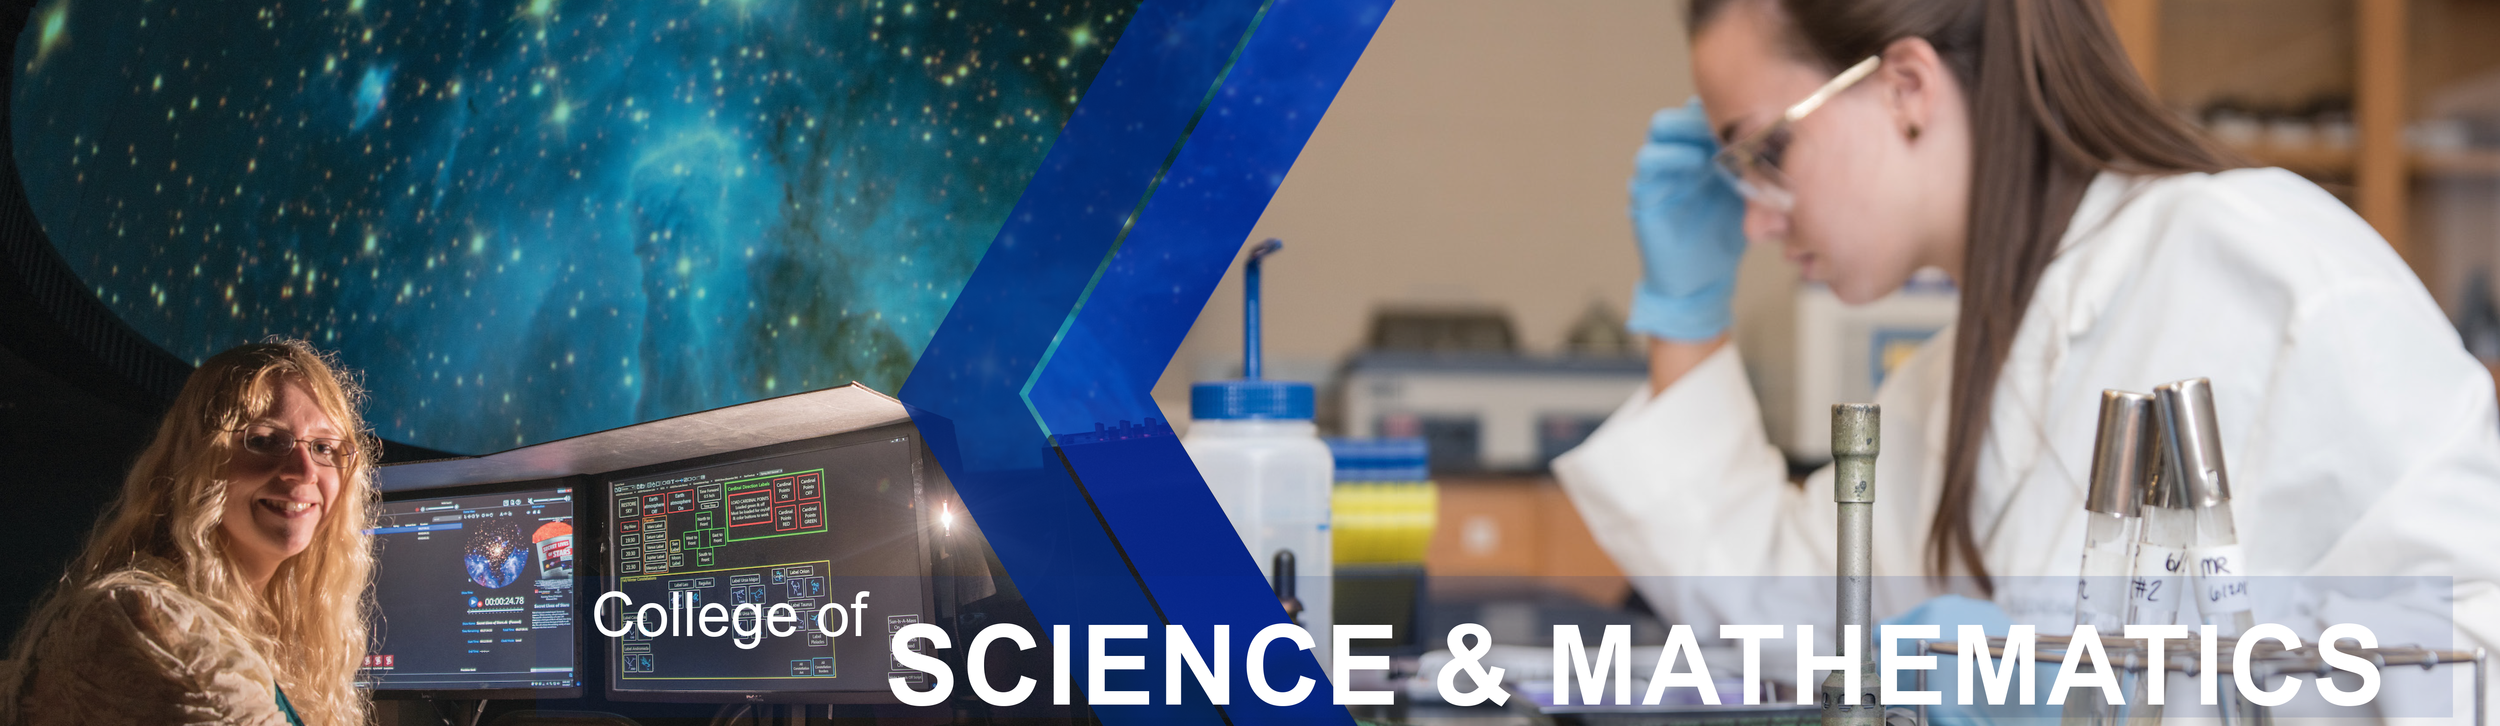 College of Science and Mathematics page banner: Features an Astronomy uses the technology in the planetarium to show a view from space. Image 2 shows a biology student studying her work.